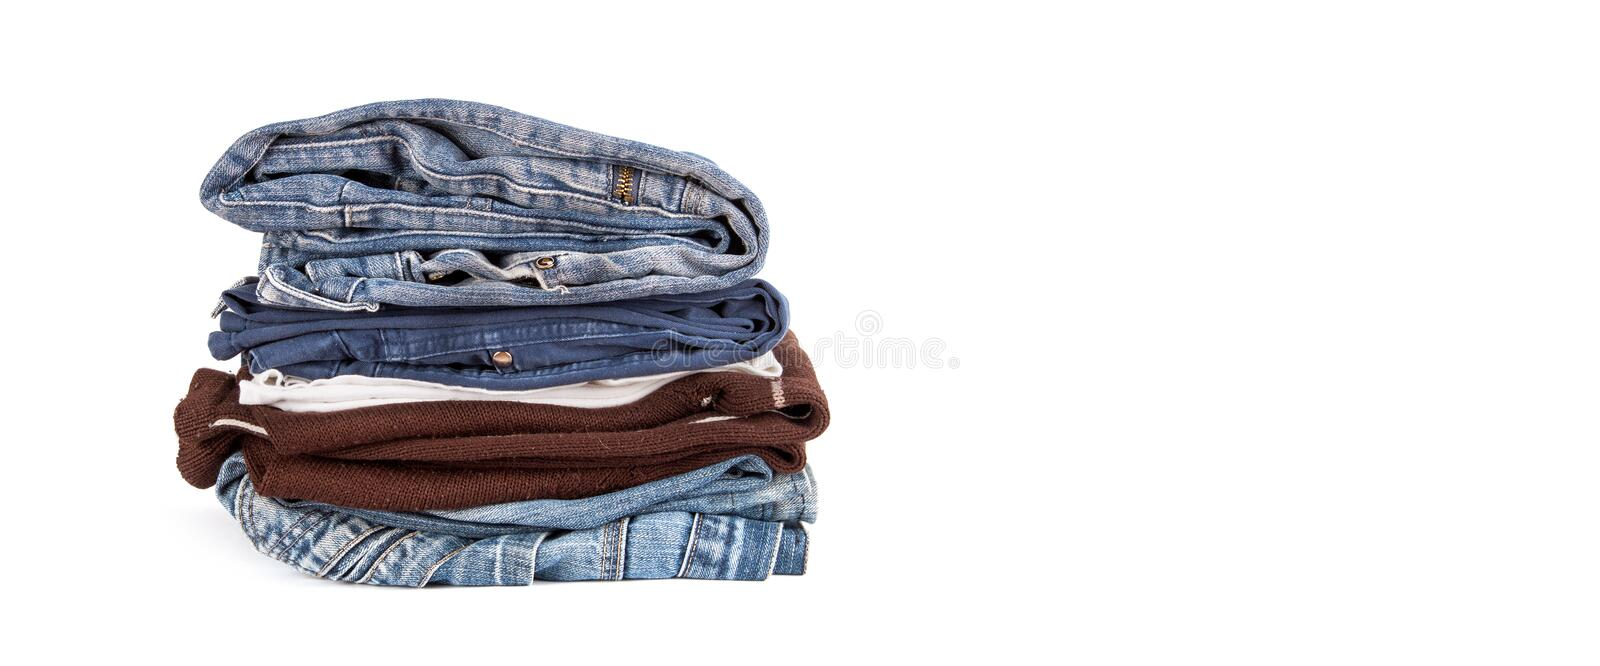 Stack of old clothes royalty free stock photos